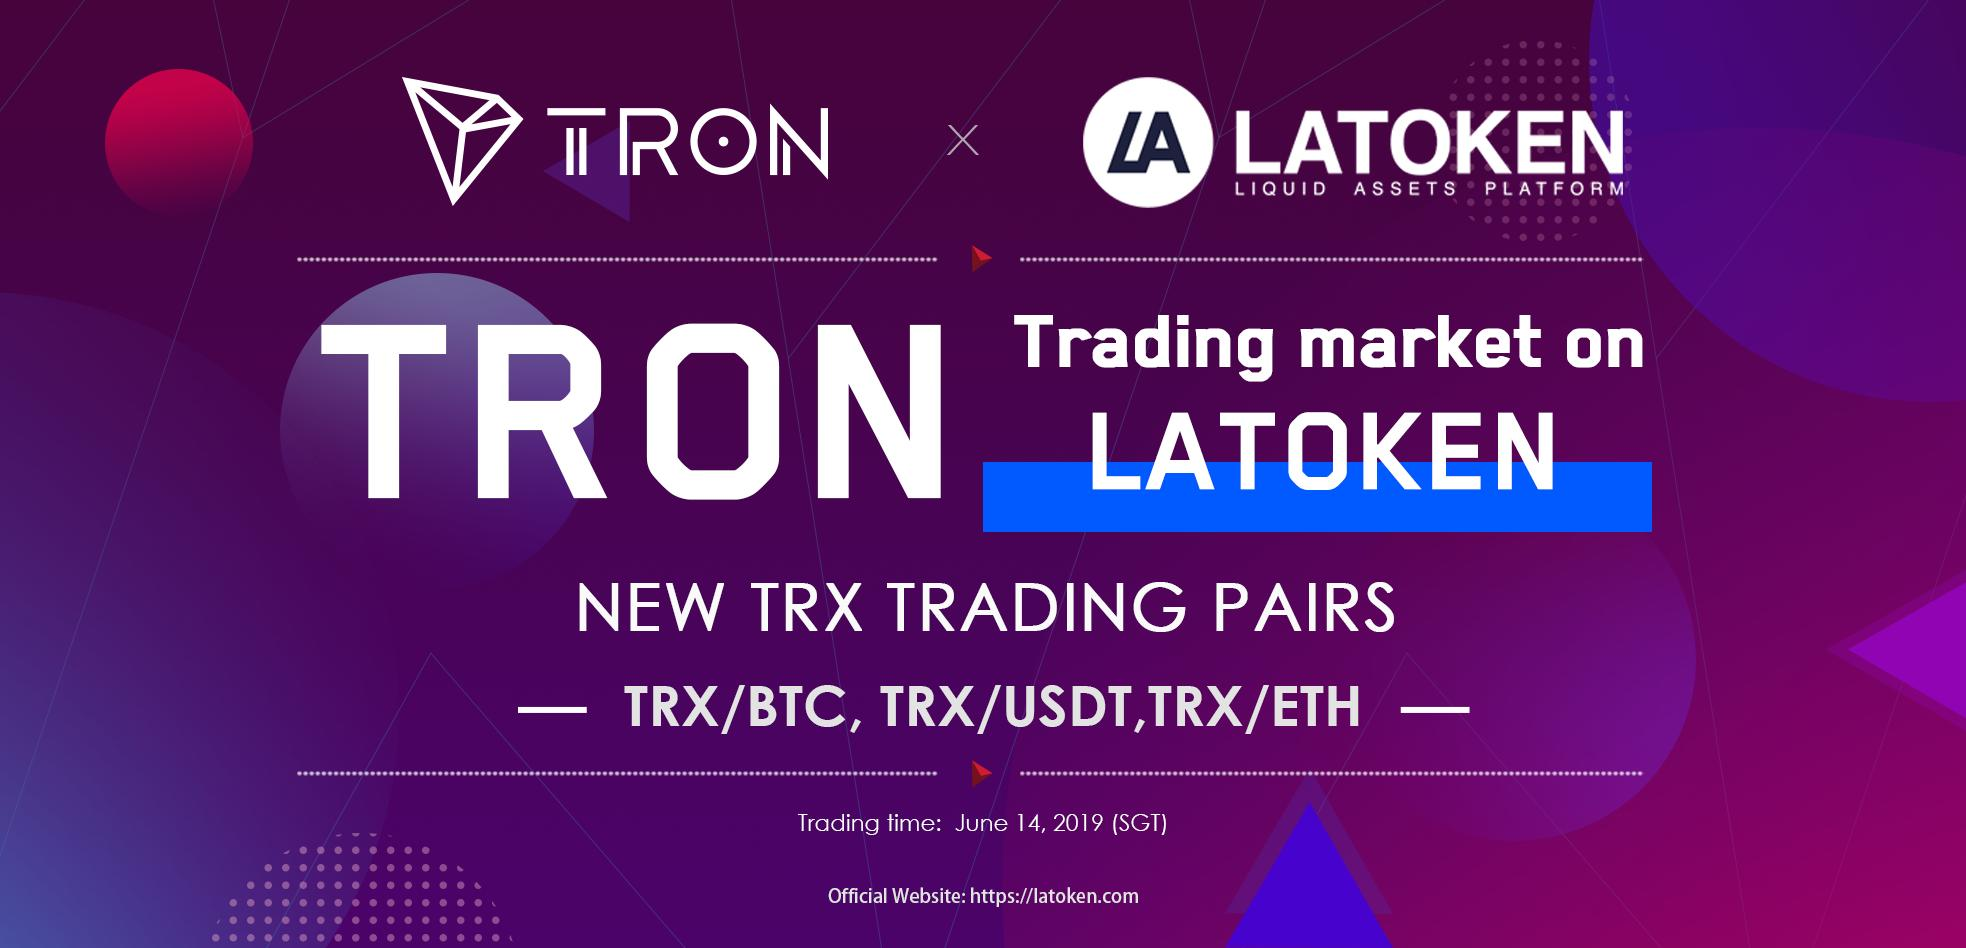 #TRON trading market is available on @latokens, #TRONICS can trade TRX/BTC, TRX/USDT, TRX/ETH now. https://t.co/oZDxDpDf5N